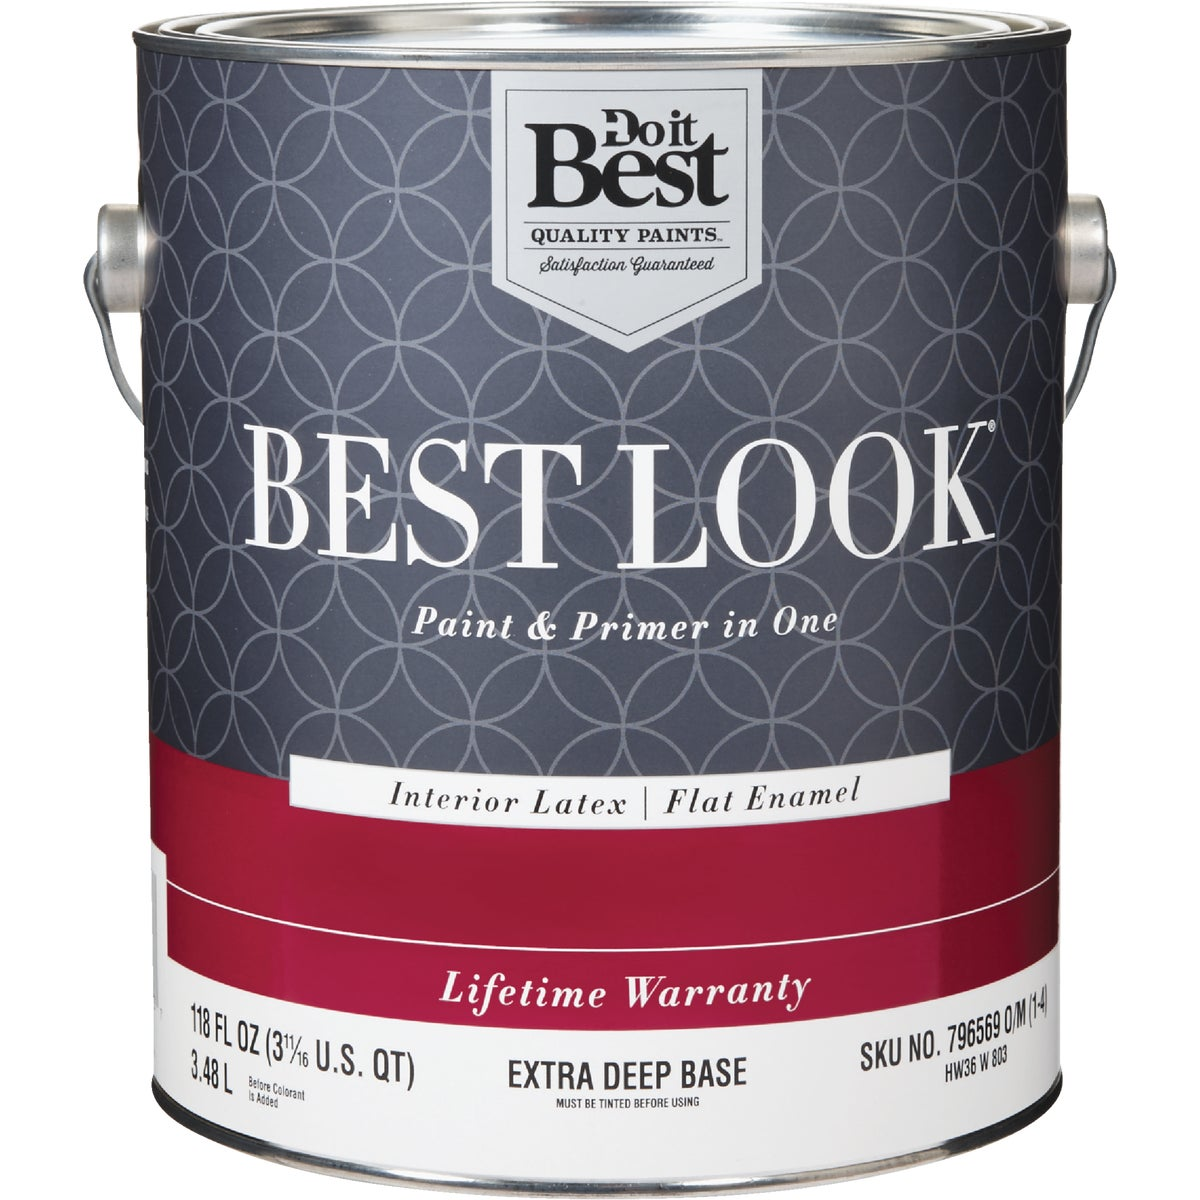 INT FLT EX DEEP BS PAINT - HW36W0803-16 by Do it Best